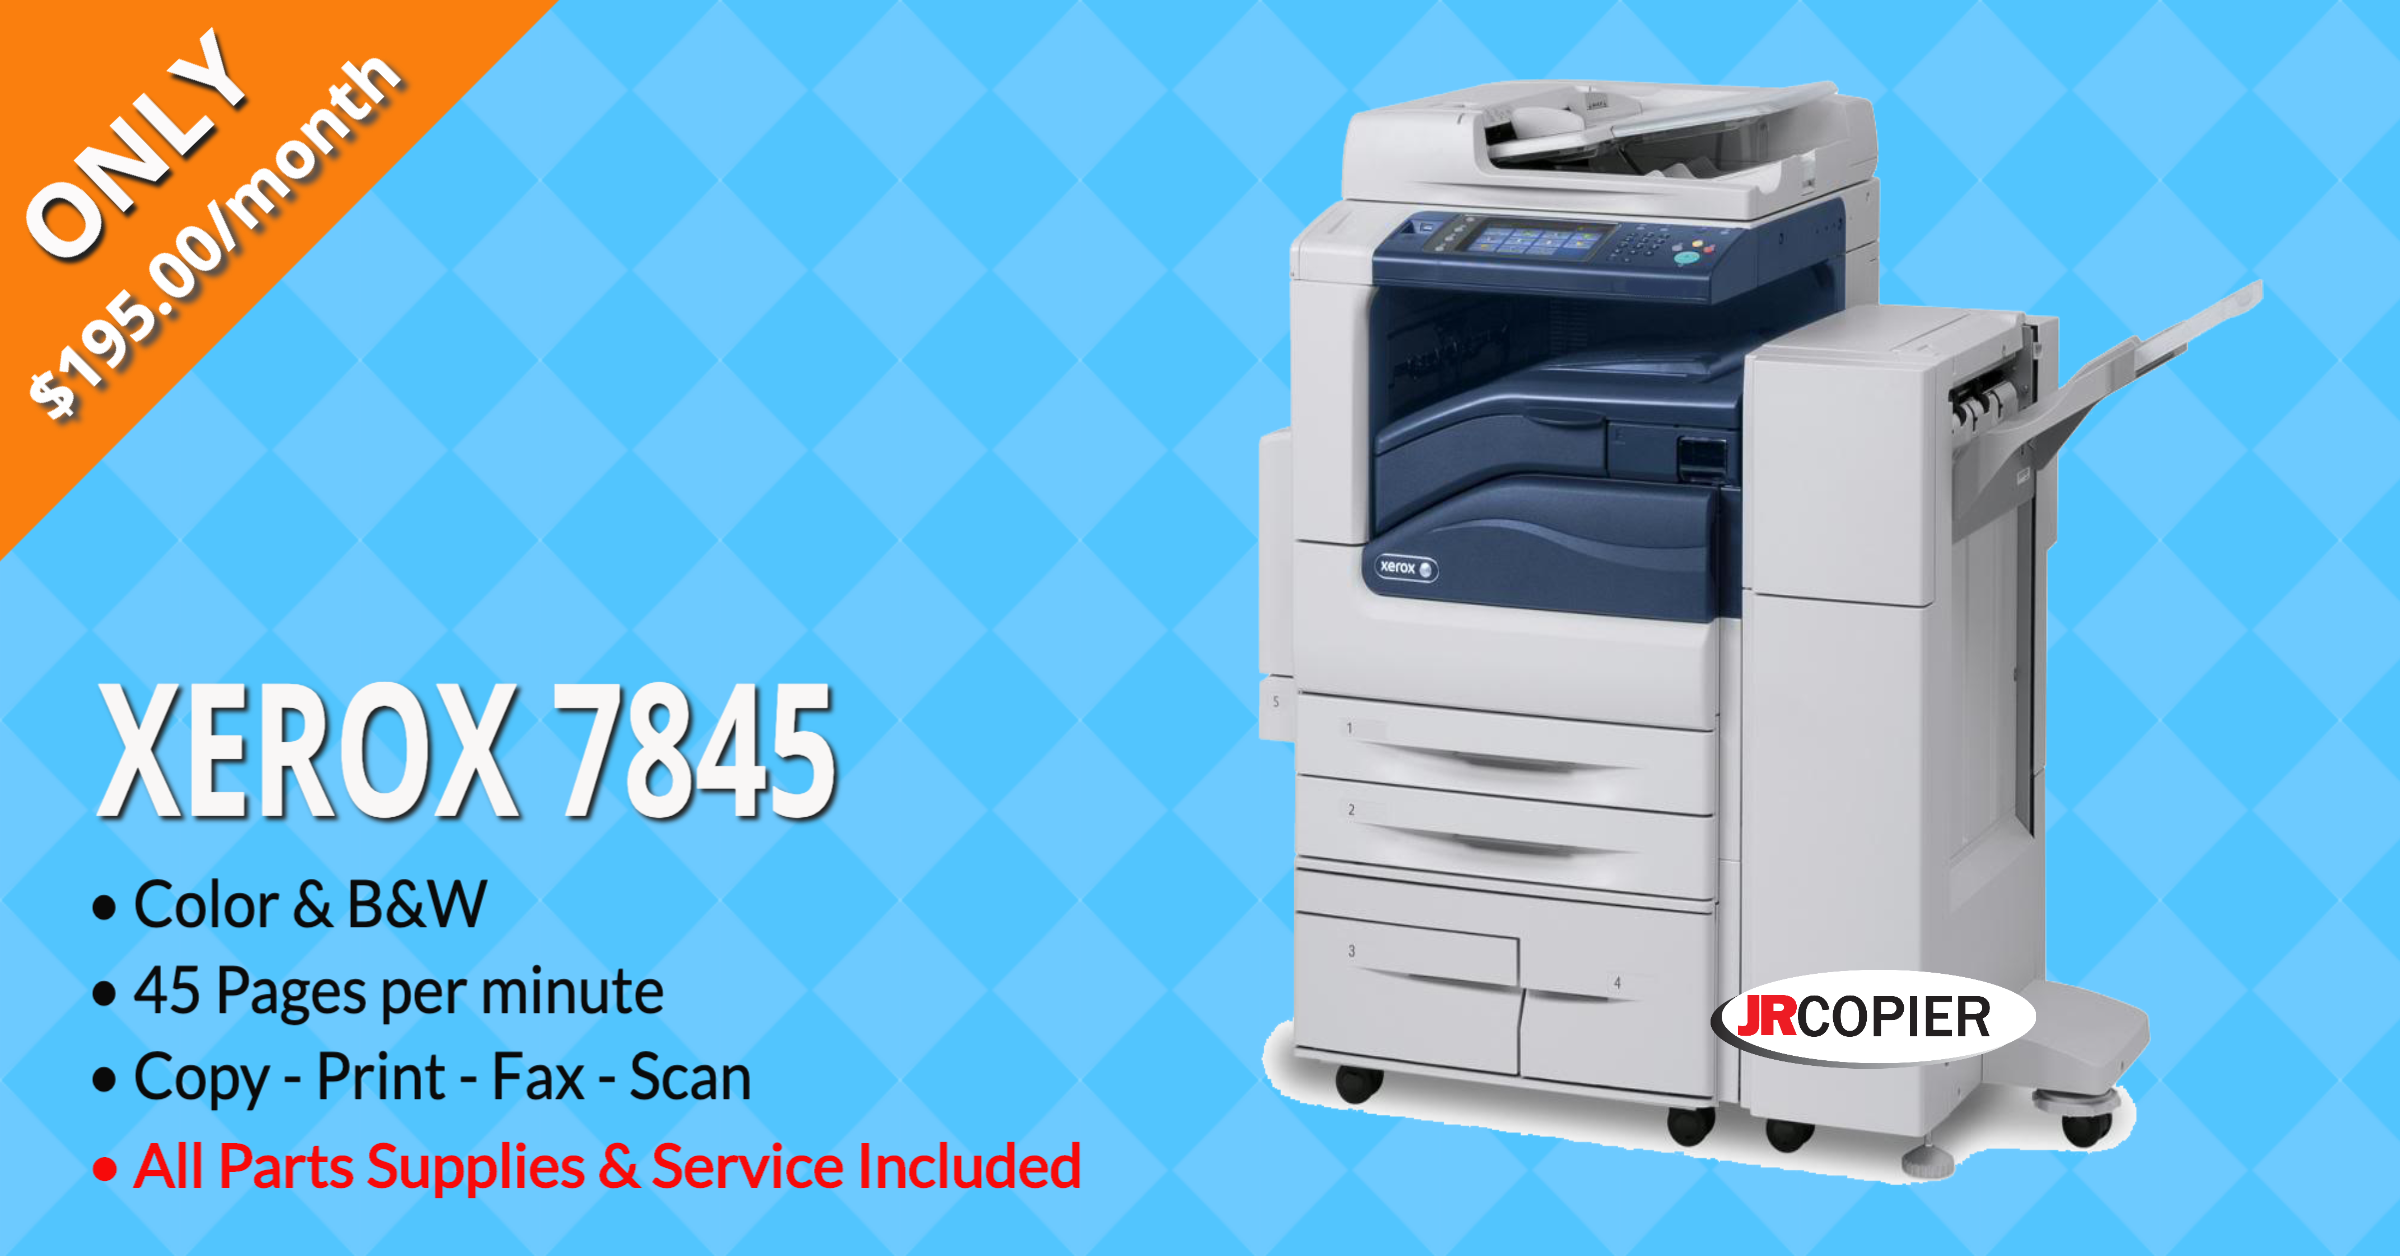 Office Printer Rental 07086, 10001, 10002, 10003, 10004, 10005, 10006, 10007, 10008, 10009, 10010, 10011, 10012, 10013, 10014, 10015, 10016, 10017, 10018, 10019, 10020, 10021, 10022, 10023, 10024, 10025, 10026, 10027, 10028, 10029, 10030, 10031, 10032, 10033, 10034, 10035, 10036, 10037, 10038, 10039, 10040, 10041, 10043, 10044, 10045, 10046, 10047, 10048, 10055, 10060, 10065, 10069, 10072, 10075, 10079, 10080, 10081, 10082, 10087, 10090, 10094, 10095, 10096, 10098, 10099, 10101, 10102, 10103, 10104, 10105, 10106, 10107, 10108, 10109, 10110, 10111, 10112, 10113, 10114, 10115, 10116, 10117, 10118, 10119, 10120, 10121, 10122, 10123, 10124, 10125, 10126, 10128, 10129, 10130, 10131, 10132, 10133, 10138, 10149, 10150, 10151, 10152, 10153, 10154, 10155, 10156, 10157, 10158, 10159, 10160, 10161, 10162, 10163, 10164, 10165, 10166, 10167, 10168, 10169, 10170, 10171, 10172, 10173, 10174, 10175, 10176, 10177, 10178, 10179, 10184, 10185, 10196, 10197, 10199, 10203, 10211, 10212, 10213, 10242, 10249, 10256, 10257, 10258, 10259, 10260, 10261, 10265, 10268, 10269, 10270, 10271, 10272, 10273, 10274, 10275, 10276, 10277, 10278, 10279, 10280, 10281, 10282, 10285, 10286, 10292, 10301, 10302, 10303, 10304, 10305, 10306, 10307, 10308, 10309, 10310, 10311, 10312, 10313, 10314, 10451, 10452, 10453, 10454, 10455, 10456, 10457, 10458, 10459, 10460, 10461, 10462, 10463, 10464, 10465, 10466, 10467, 10468, 10469, 10470, 10471, 10472, 10473, 10474, 10475, 10499, 11001, 11004, 11005, 11040, 11101, 11102, 11103, 11104, 11105, 11106, 11109, 11120, 11201, 11202, 11203, 11204, 11205, 11206, 11207, 11208, 11209, 11210, 11211, 11212, 11213, 11214, 11215, 11216, 11217, 11218, 11219, 11220, 11221, 11222, 11223, 11224, 11225, 11226, 11228, 11229, 11230, 11231, 11232, 11233, 11234, 11235, 11236, 11237, 11238, 11239, 11240, 11241, 11242, 11243, 11244, 11245, 11247, 11248, 11249, 11251, 11252, 11254, 11255, 11256, 11351, 11352, 11354, 11355, 11356, 11357, 11358, 11359, 11360, 11361, 11362, 11363, 11364, 11365, 11366, 11367, 11368, 11369, 11370, 11371, 11372, 11373, 11374, 11375, 11377, 11378, 11379, 11380, 11381, 11385, 11386, 11390, 11405, 11411, 11412, 11413, 11414, 11415, 11416, 11417, 11418, 11419, 11420, 11421, 11422, 11423, 11424, 11425, 11426, 11427, 11428, 11429, 11430, 11431, 11432, 11433, 11434, 11435, 11436, 11439, 11451, 11499, 11690, 11691, 11692, 11693, 11694, 11695, 11697